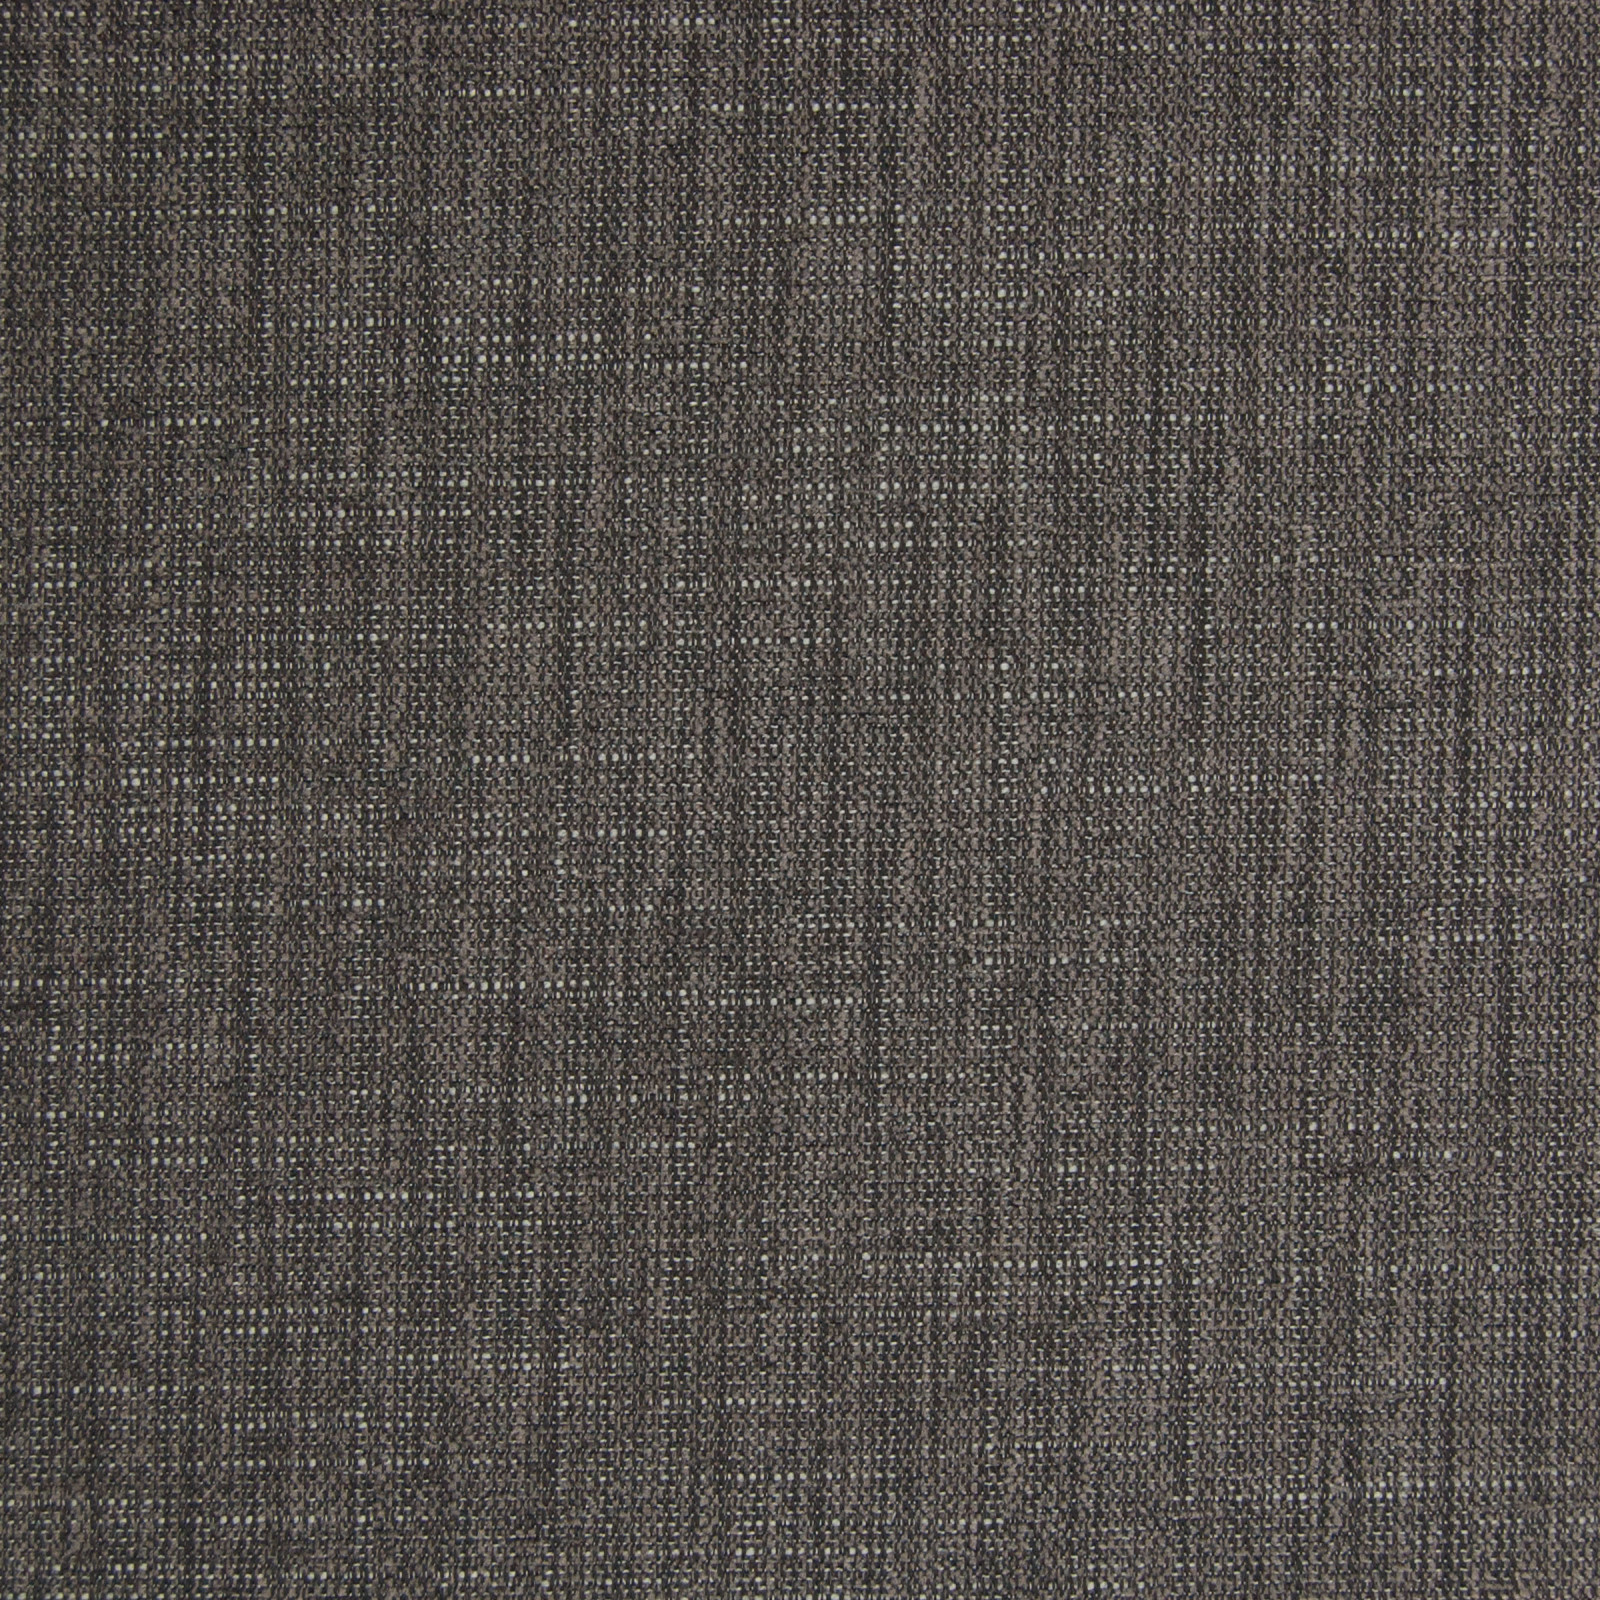 grey sofa fabric texture glider outdoor b6780 graphite greenhouse fabrics